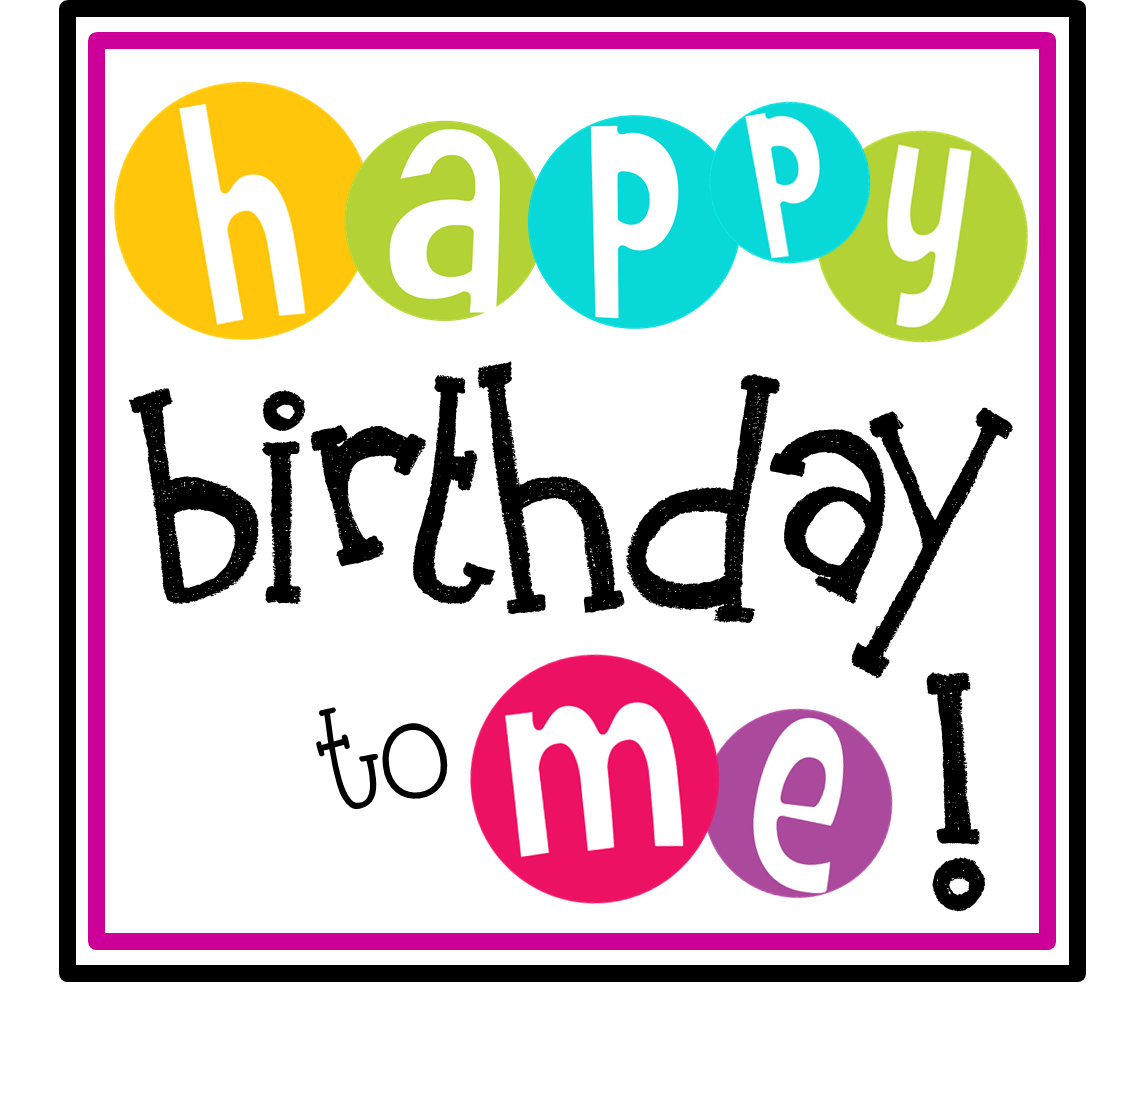 26th Birthday, Birthday Quotes And